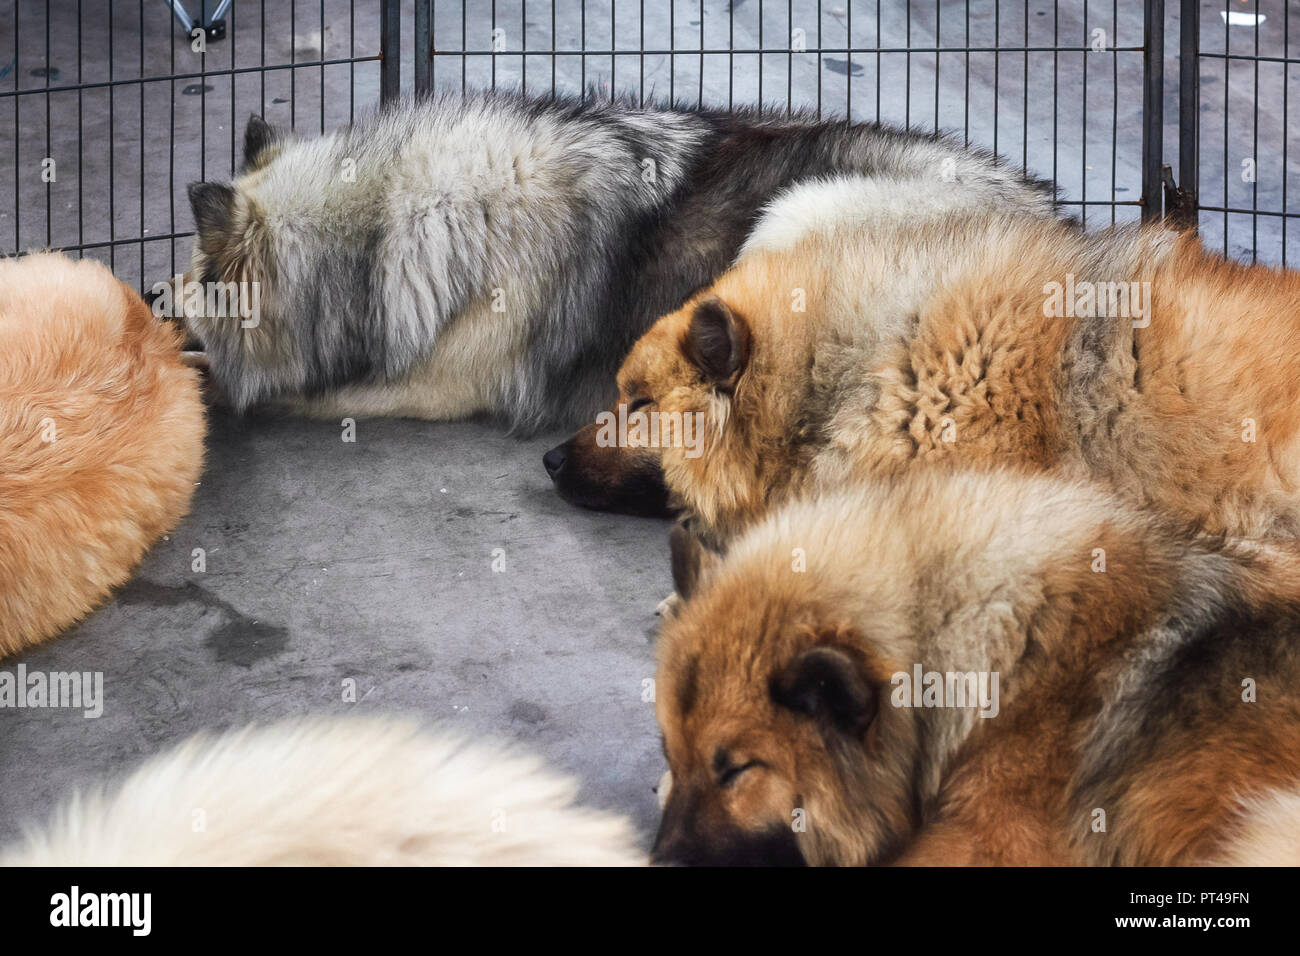 Amsterdam, The Netherlands, August 10, 2018: Big sleeping dogs in their bench during the world dog show in Amsterdam in The Netherlands. - Stock Image